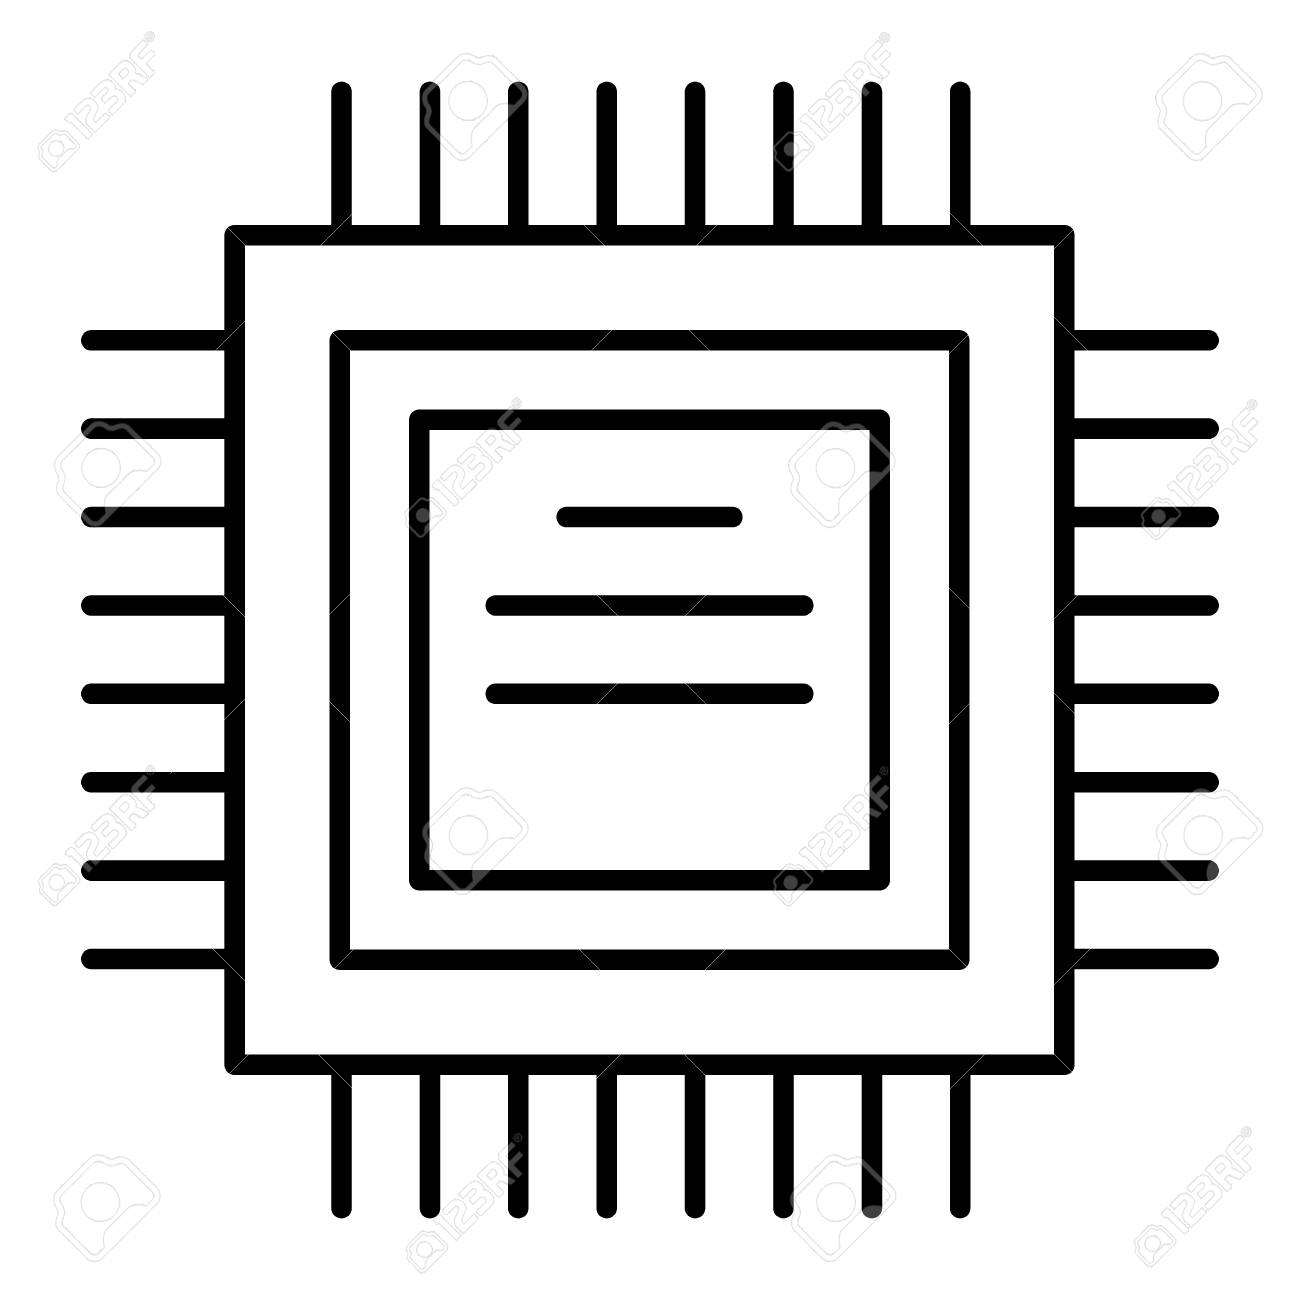 processor thin line icon cpu vector illustration isolated on royalty free cliparts vectors and stock illustration image 111823228 processor thin line icon cpu vector illustration isolated on